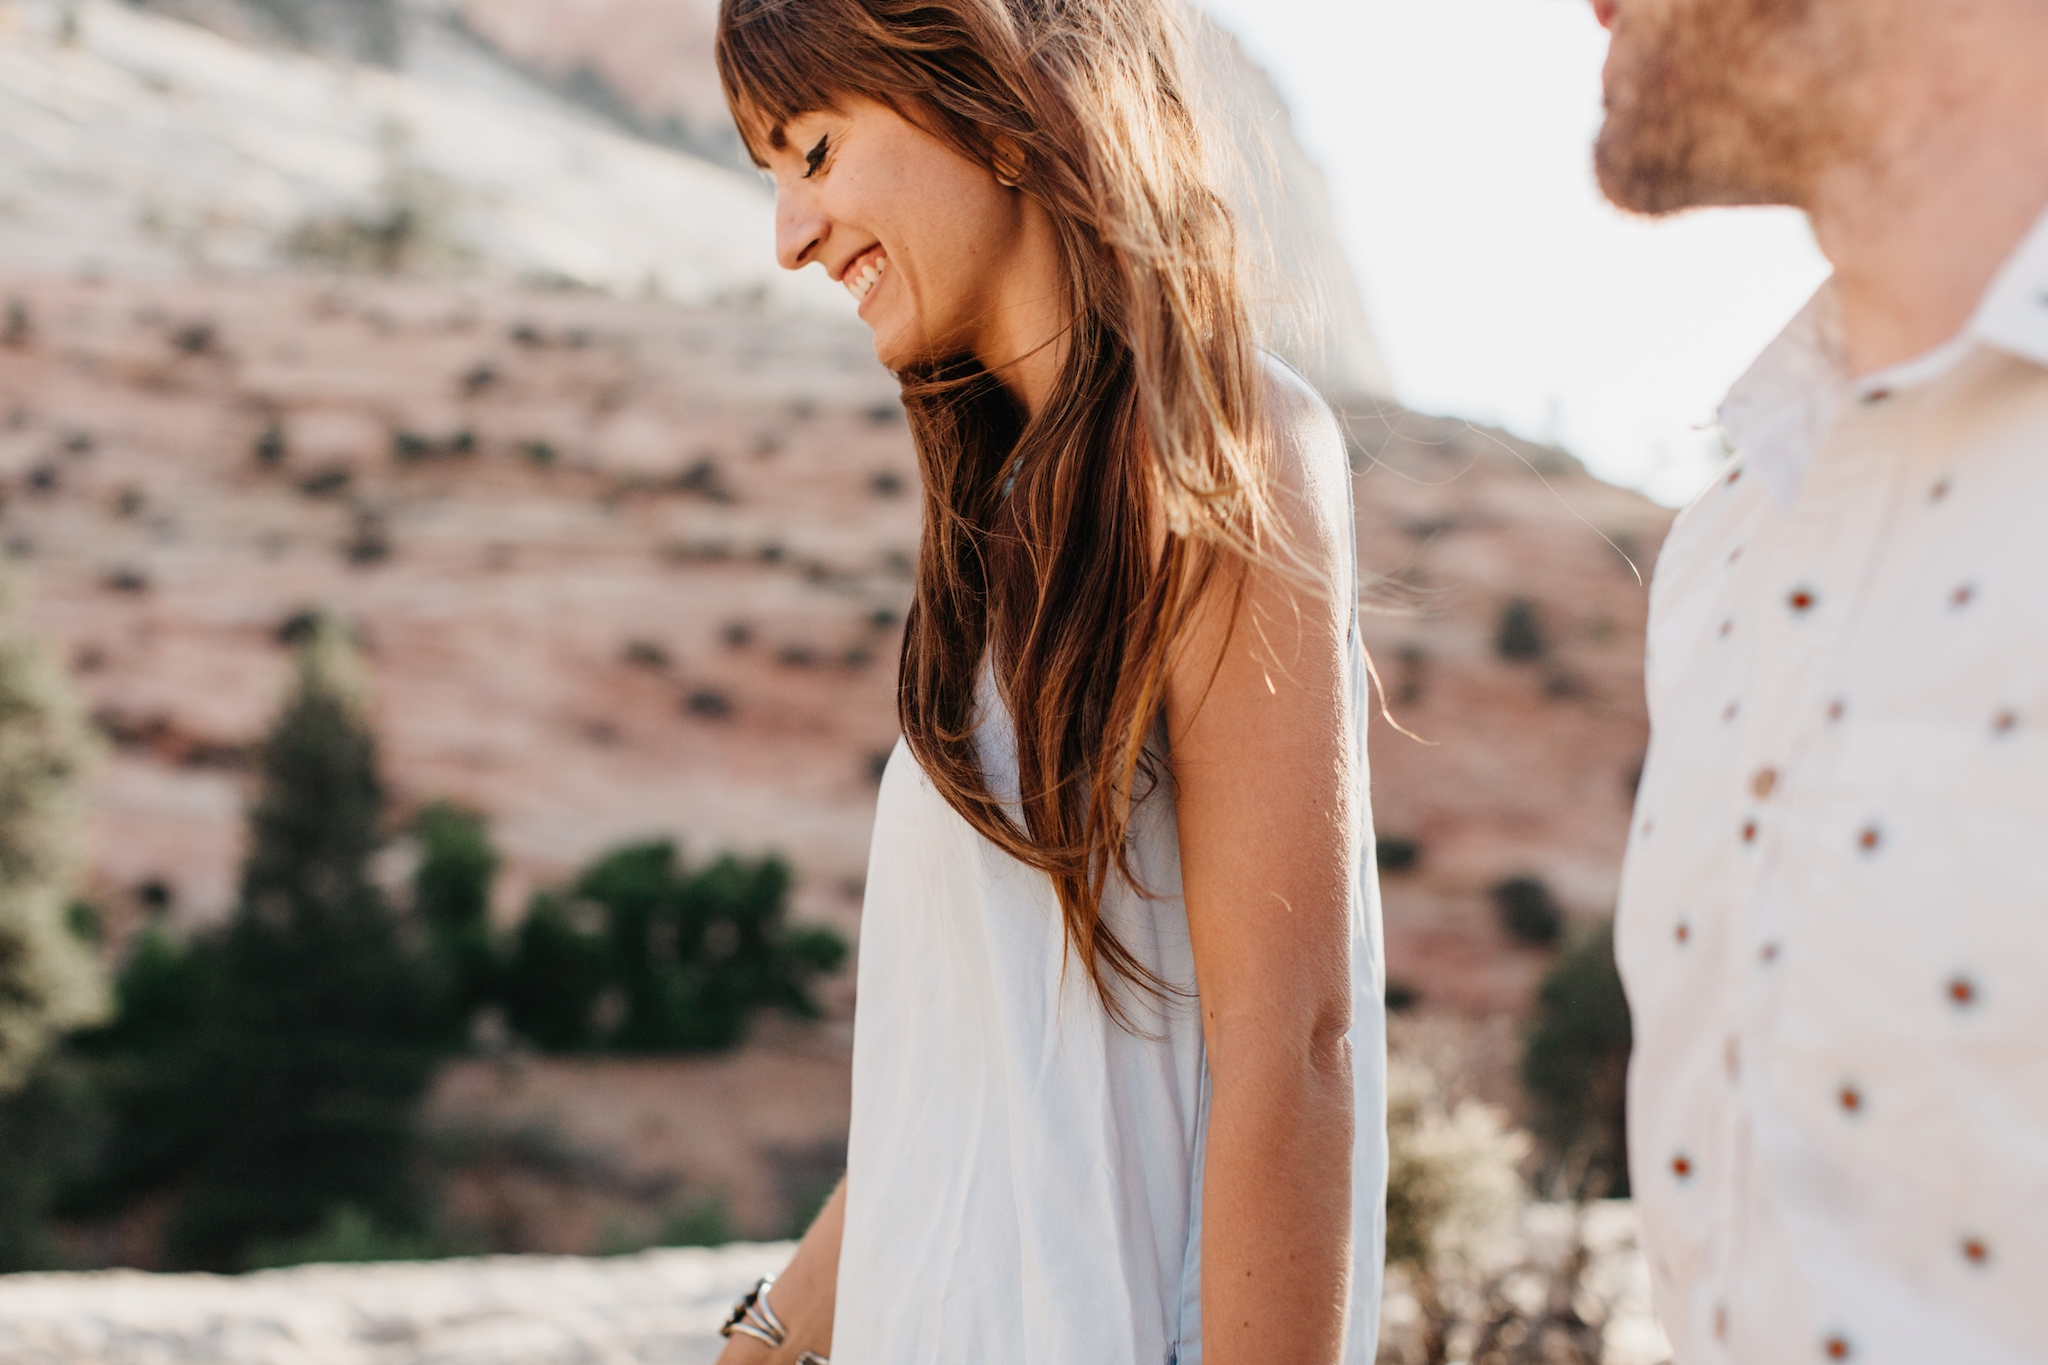 zion - engagement - photography 177.jpg